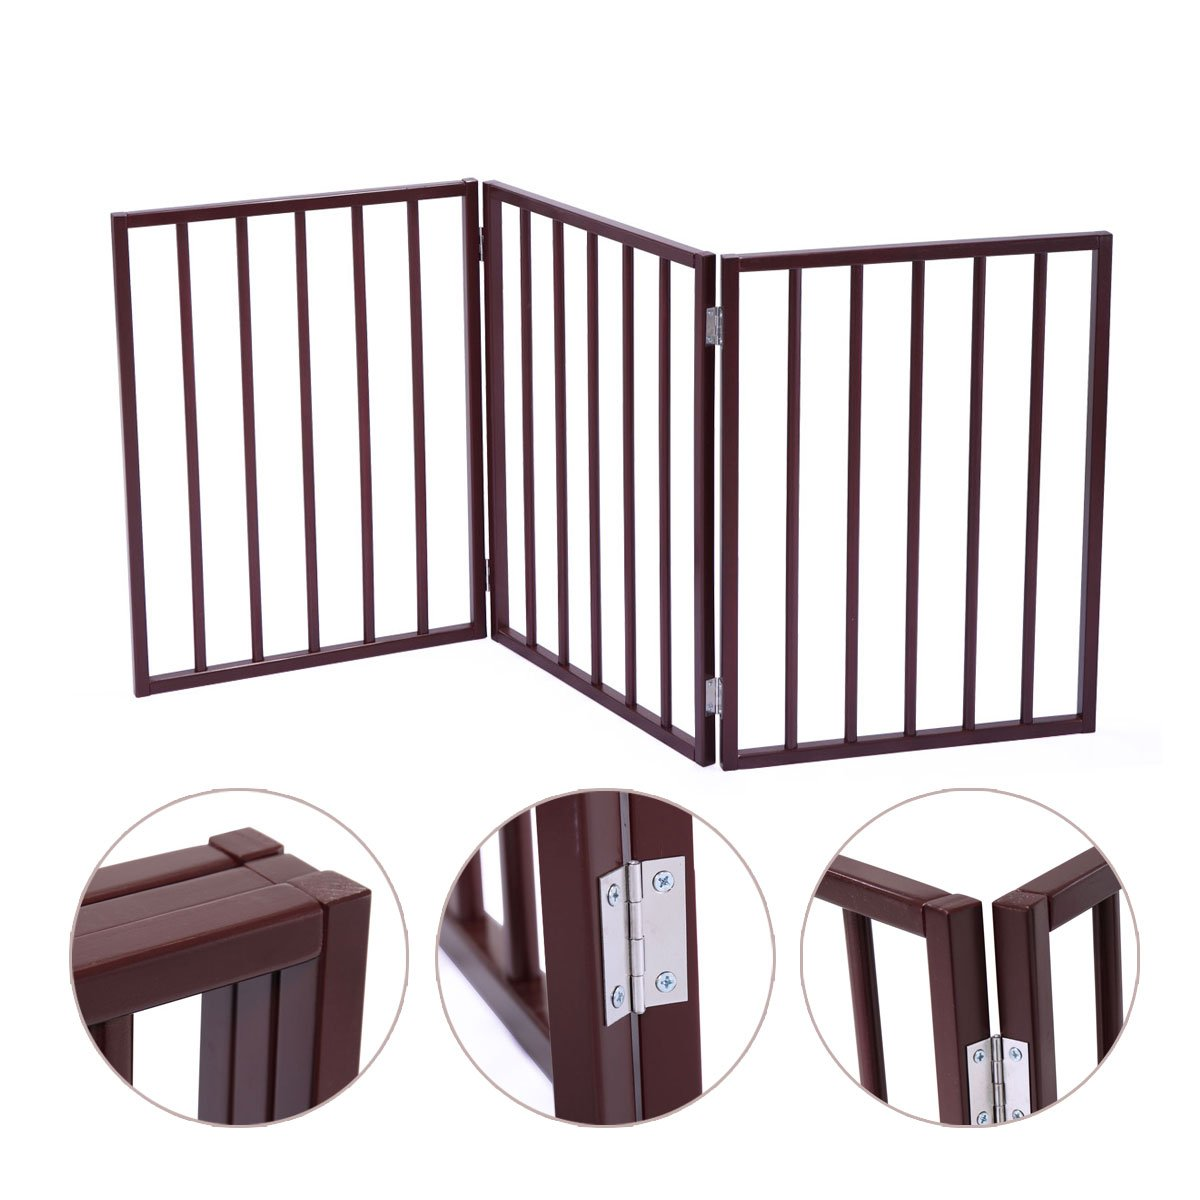 JAXPETY 24'' Folding Solid Wooden Pet Dog Fence Playpen Gate 3 Panel Free Standing Indoor Brown